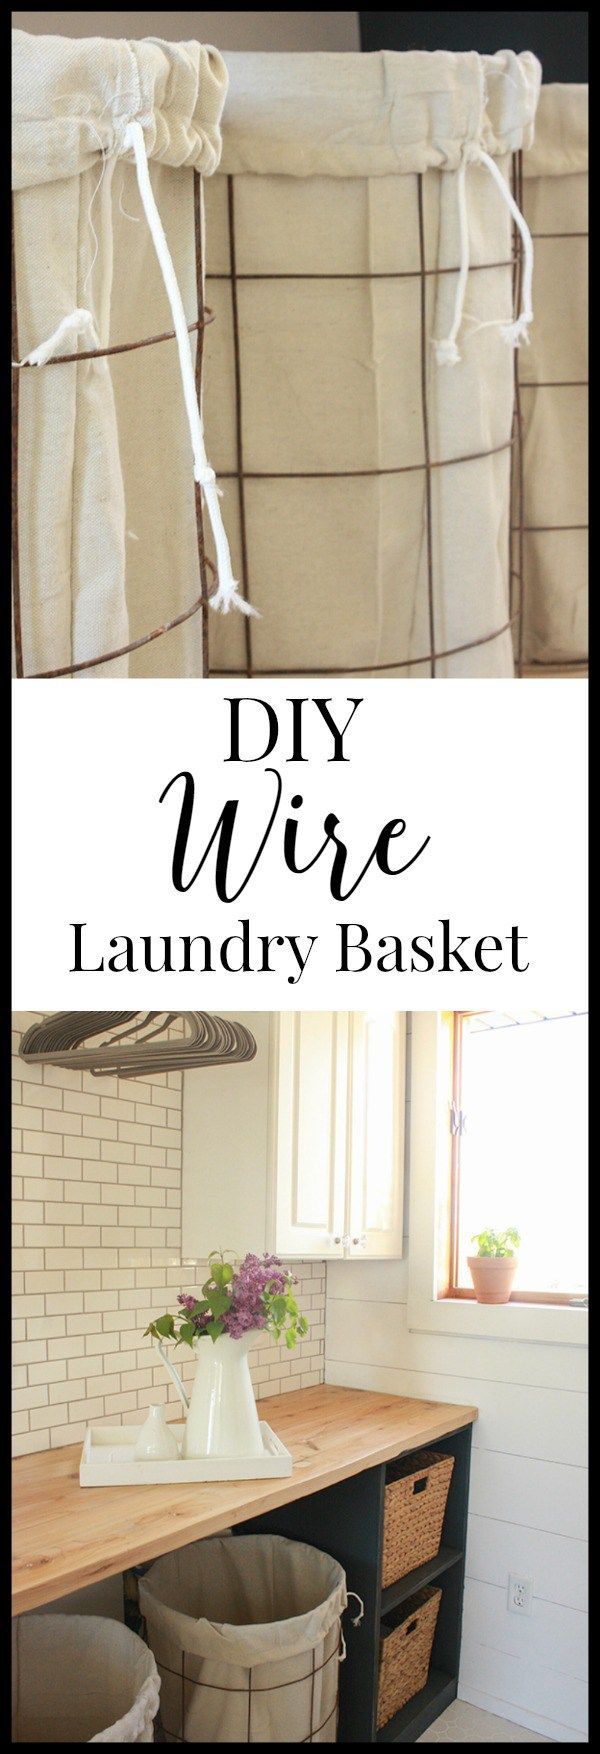 DIY Wire Laundry Baskets | Laundry, Drop and Laundry rooms